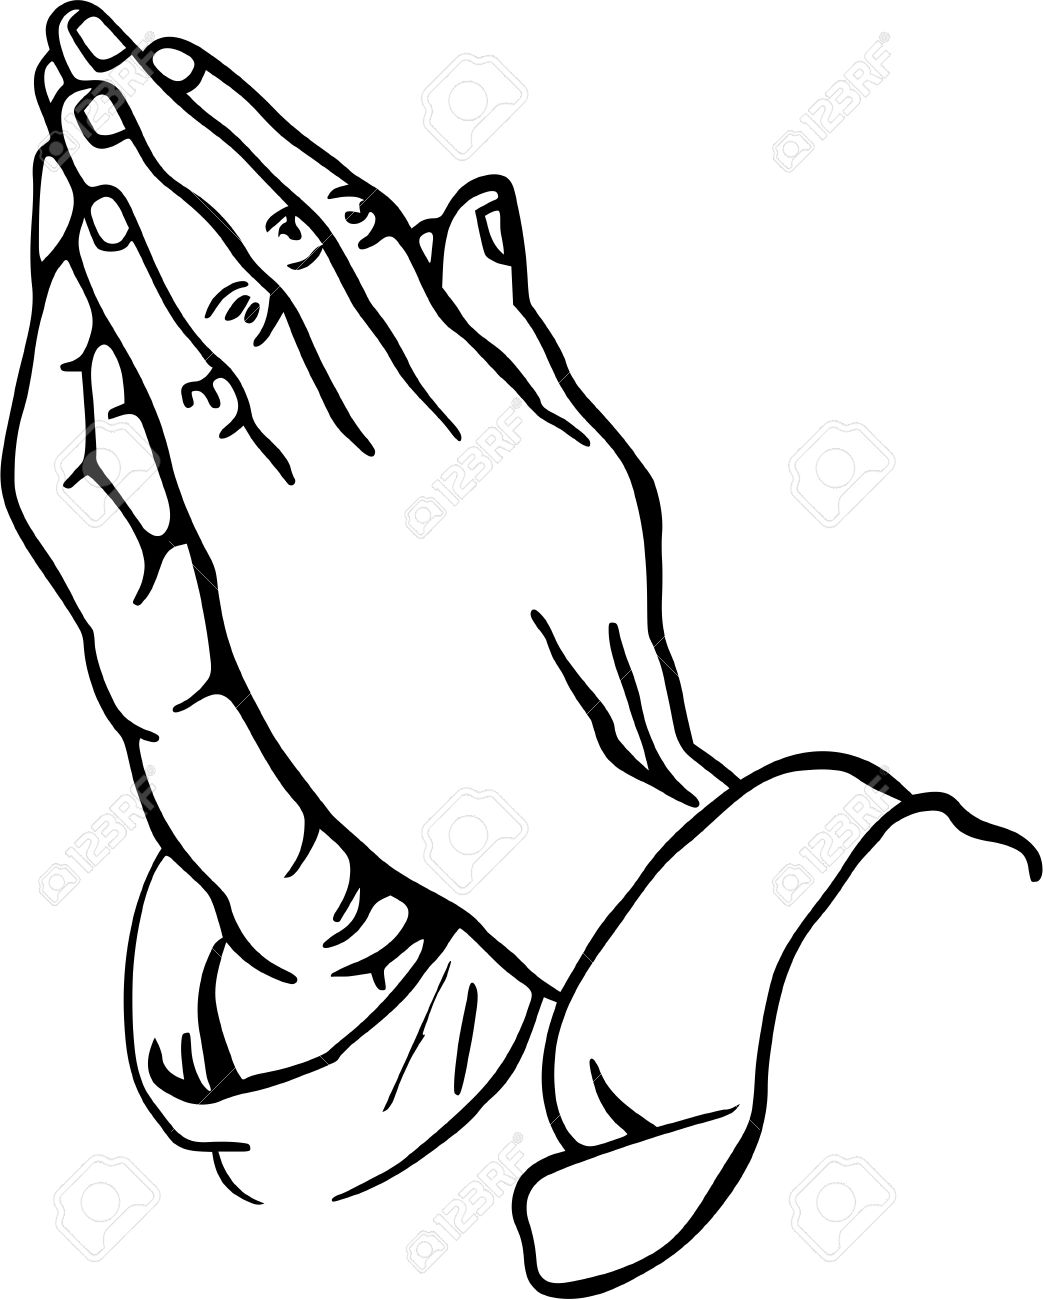 Healing clipart two hand Praying Free Hands Clipart Hands